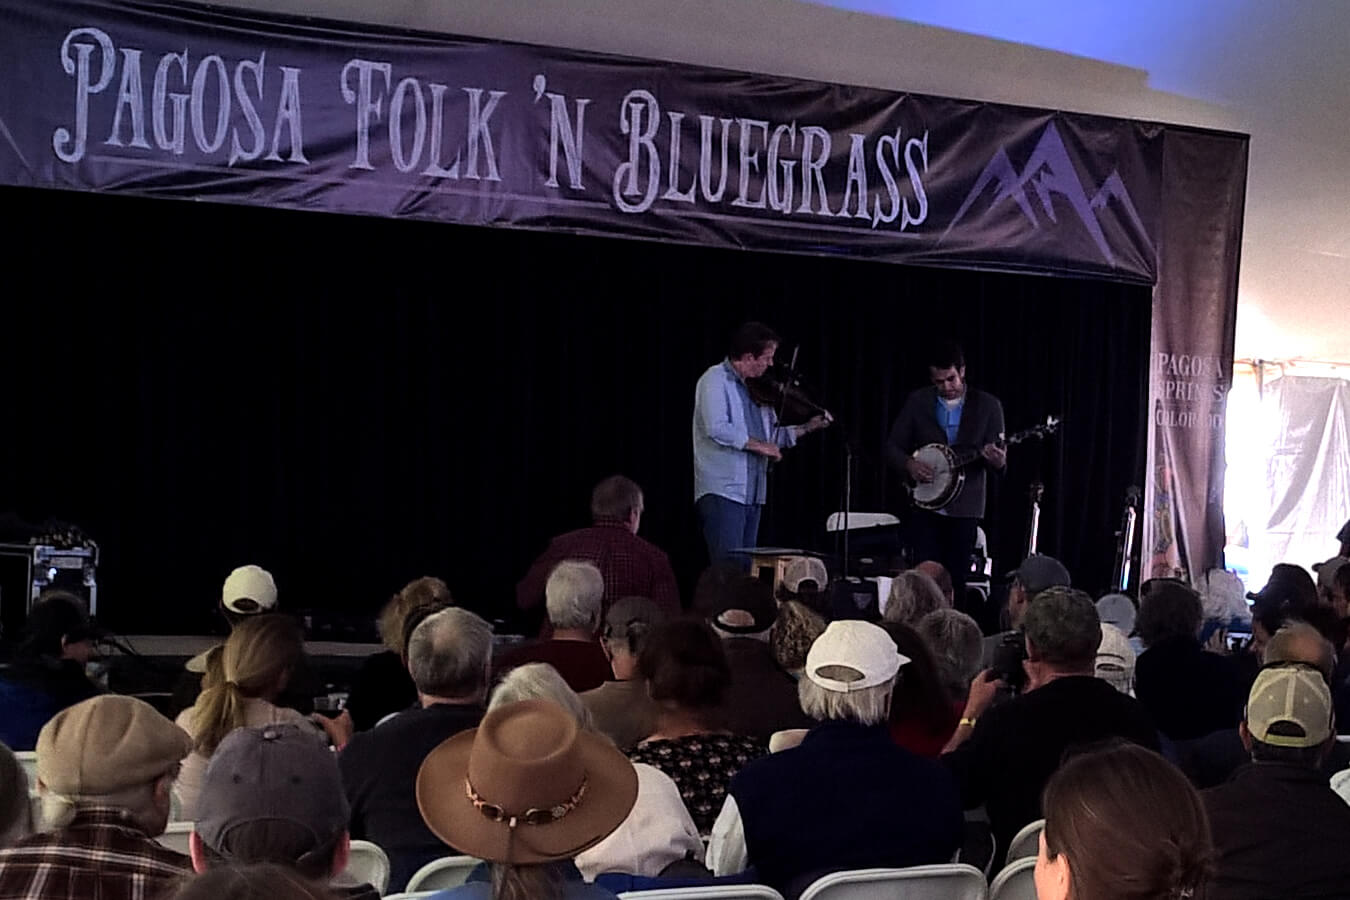 Pagosa Folk 'N Bluegrass Festival presented by KSUT